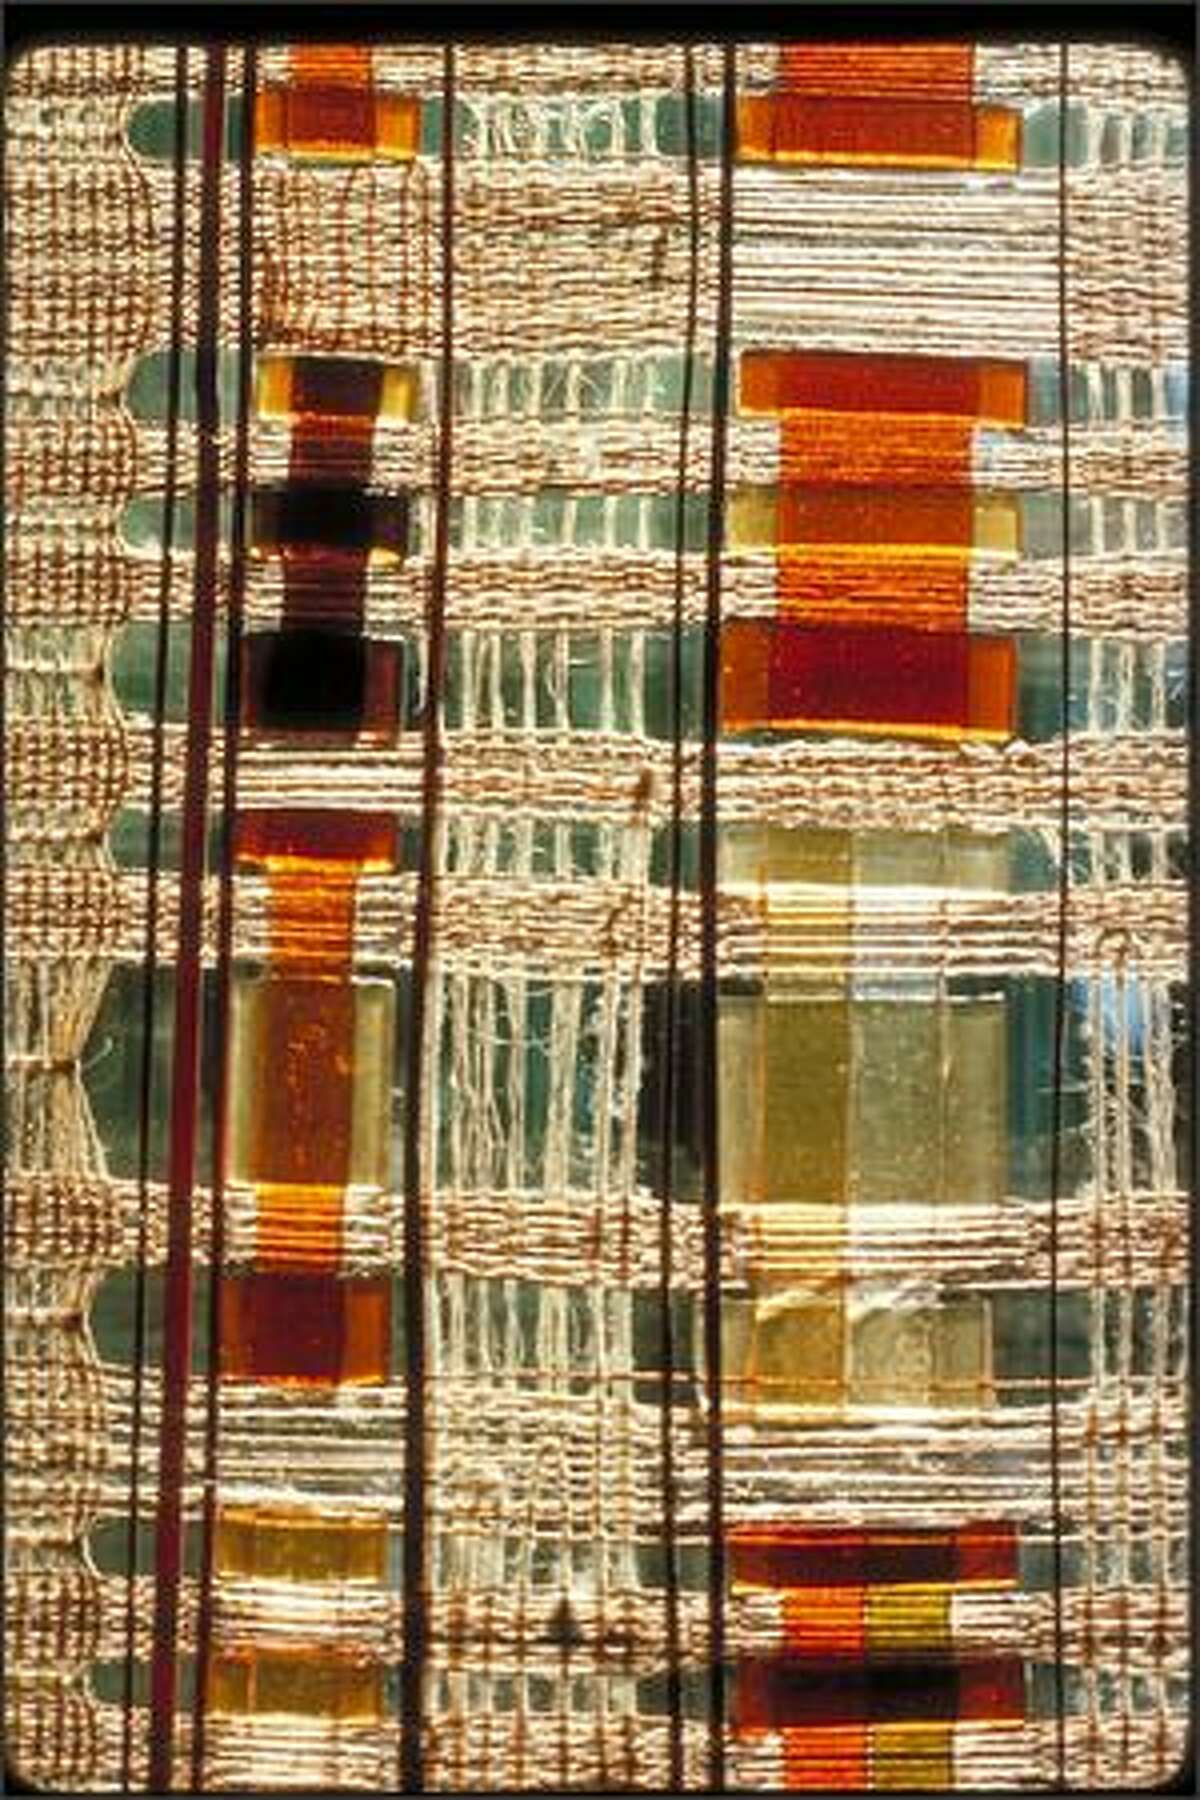 Weaving with Fused Glass (1964)